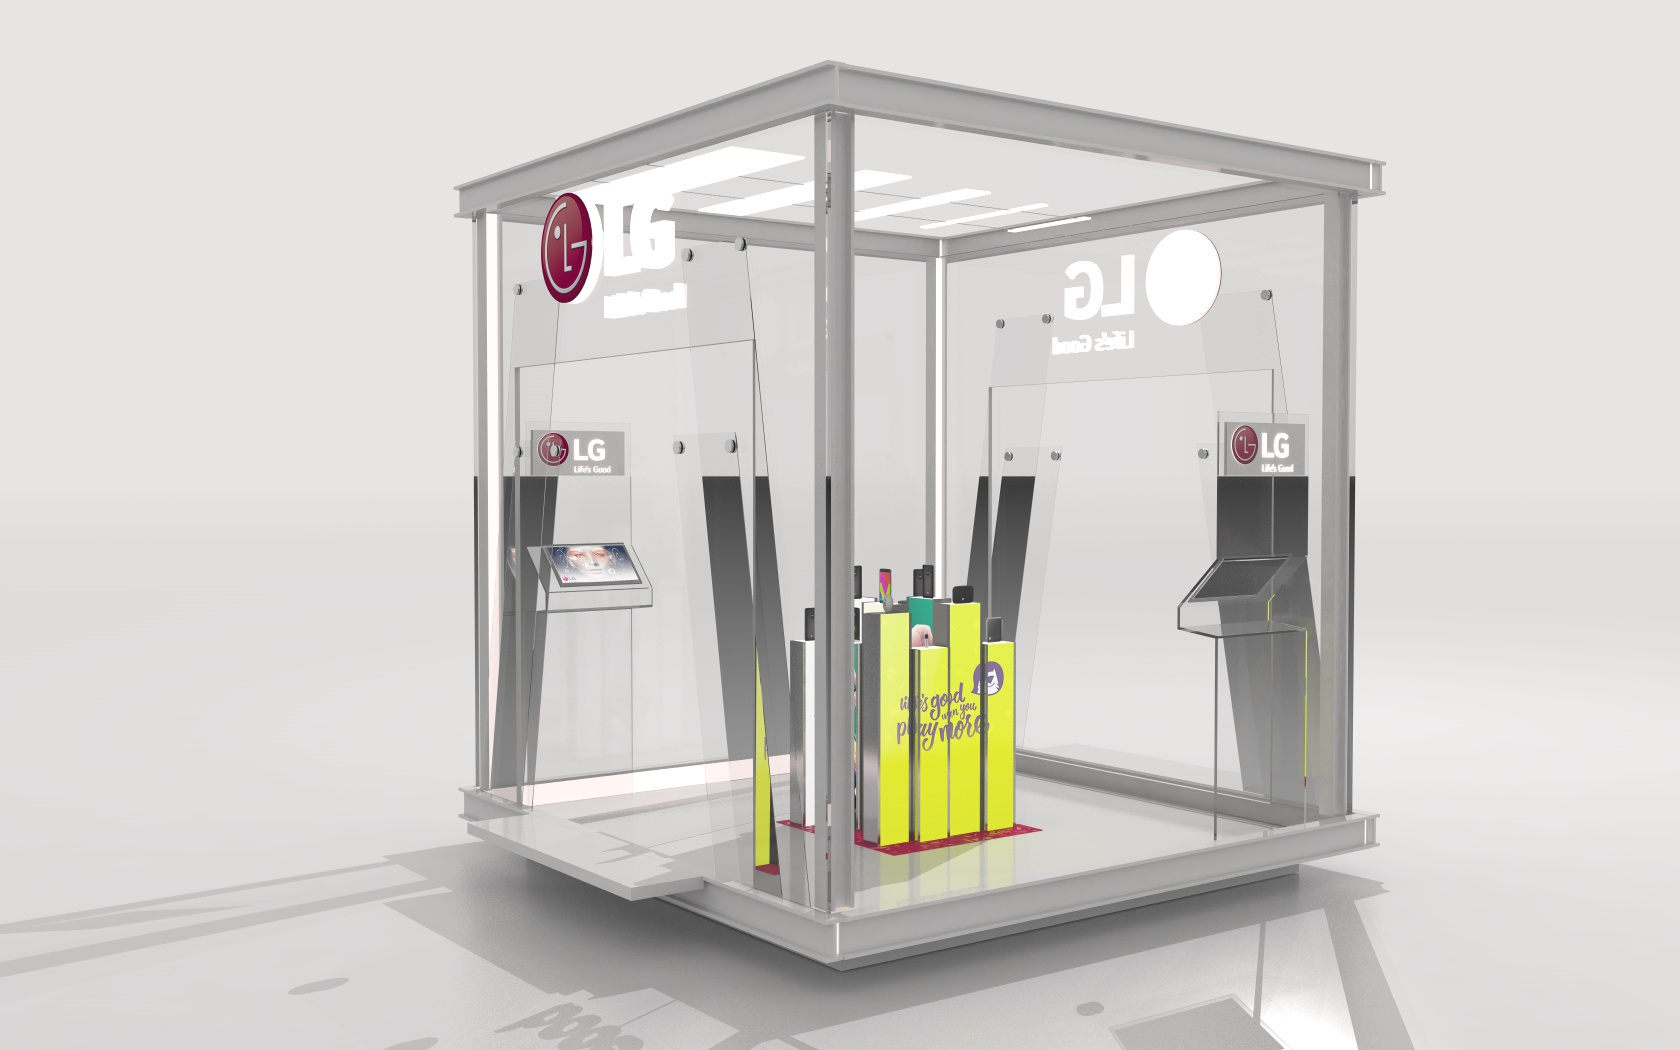 LG Booth 3D model